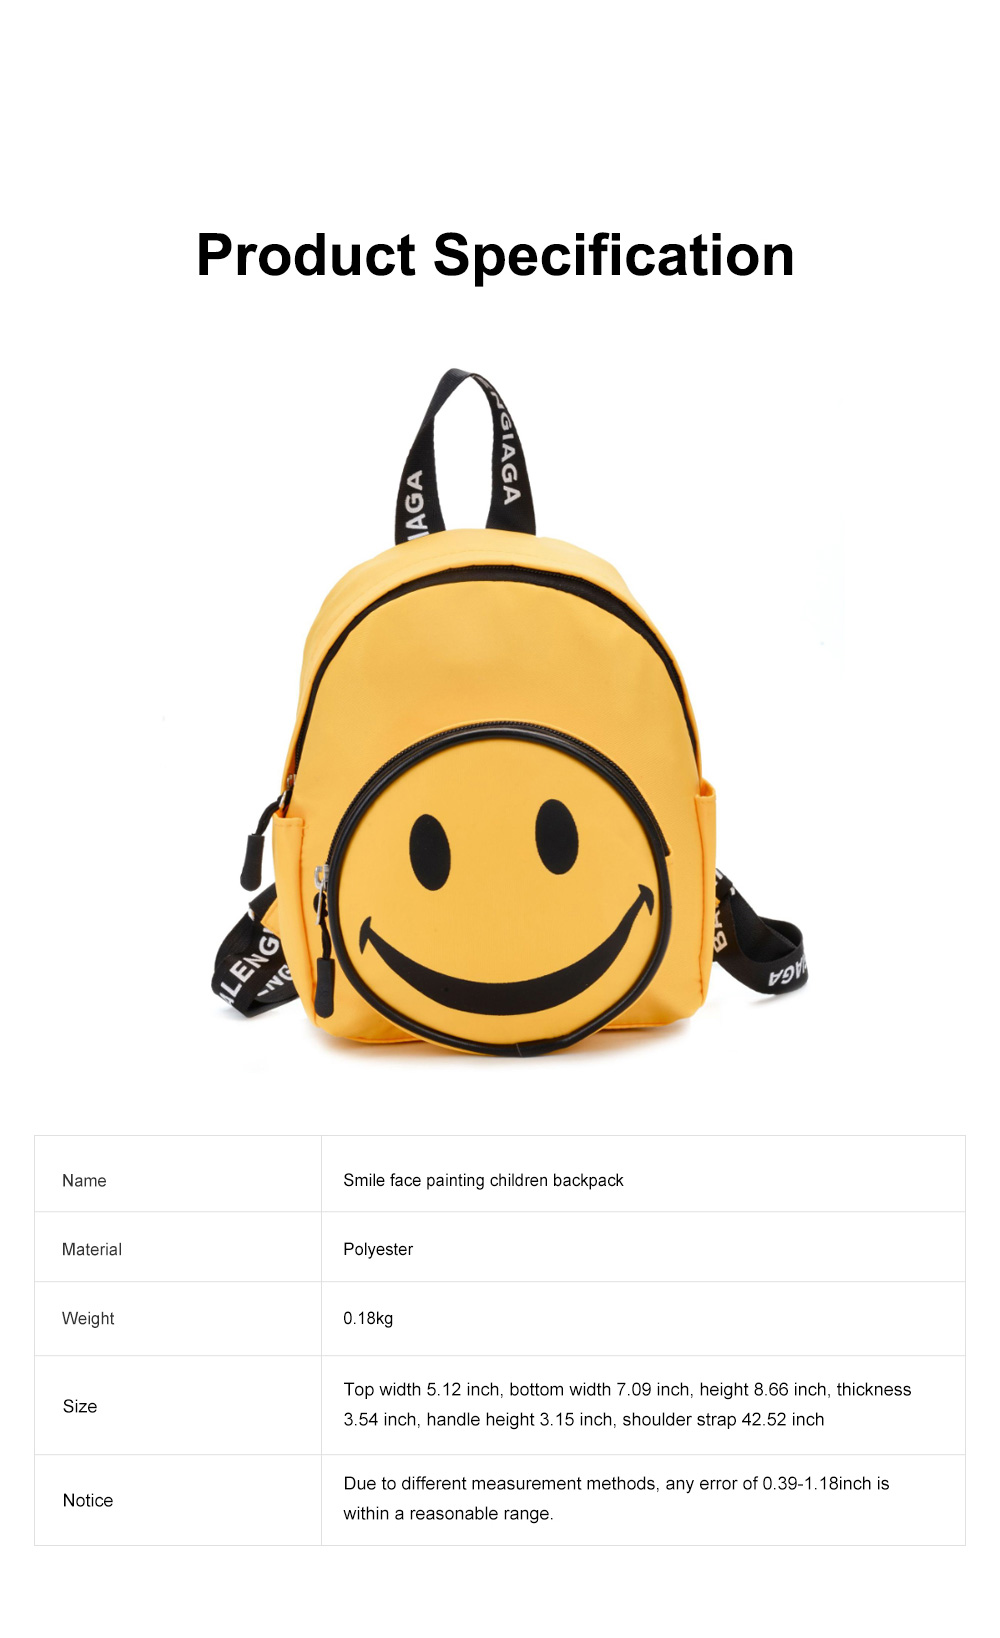 Cute Cartoon Smile Face Painting Children Backpack, Small Outdoors Traveling Shoulders Bag for Boys Girls 7